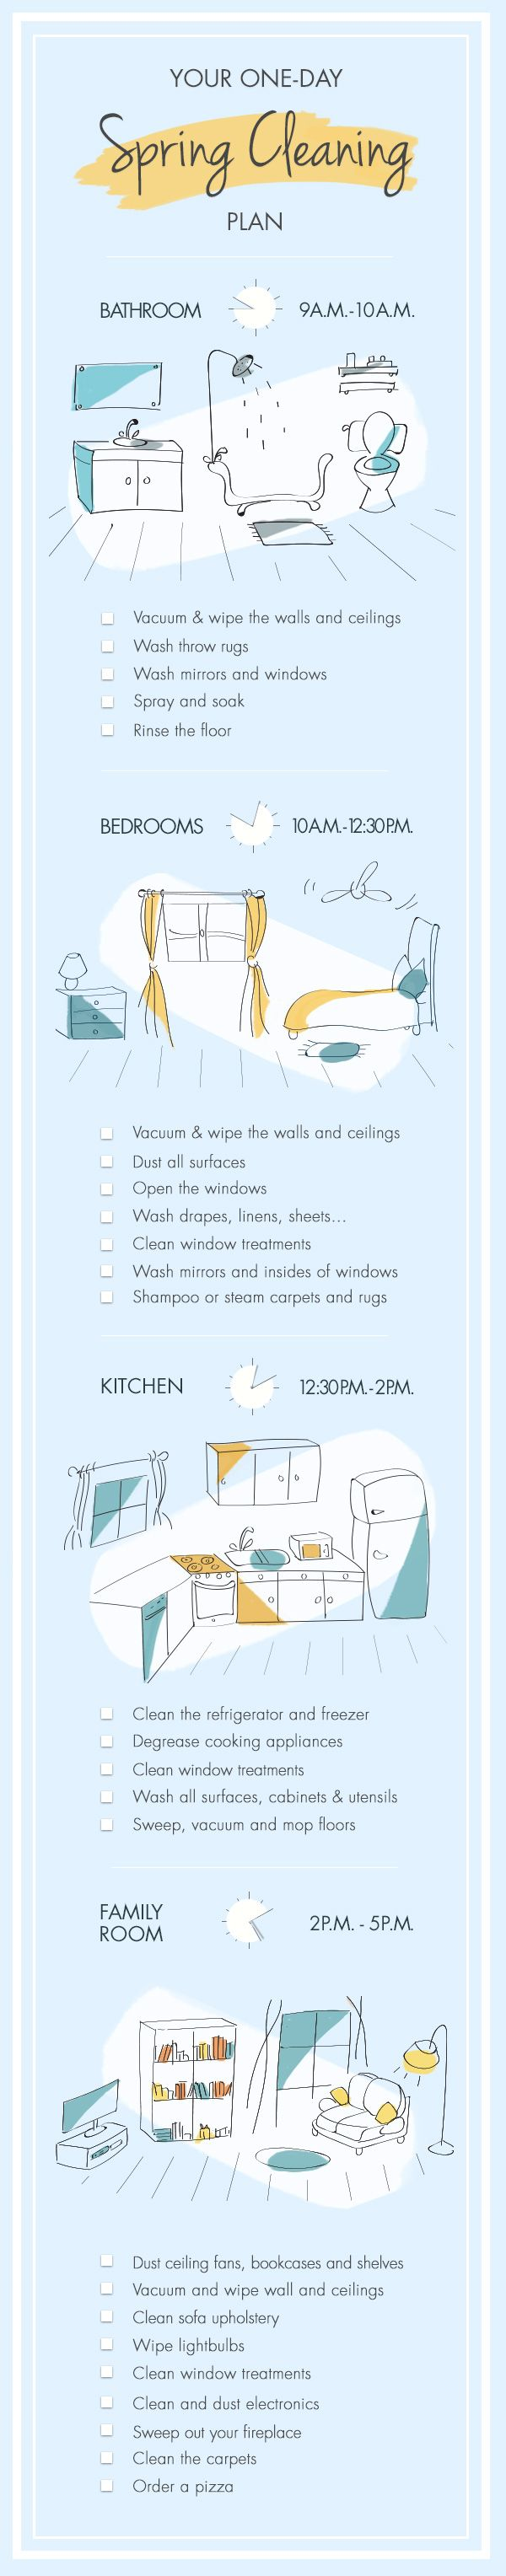 Spring cleaning doesn't have to take the entire weekend. Follow this spring cleaning checklist for the most efficient strategies to get your home sparkling, room by room. Your whole house will be refreshed and spruced up in 8 hours (yes, in a single day!)